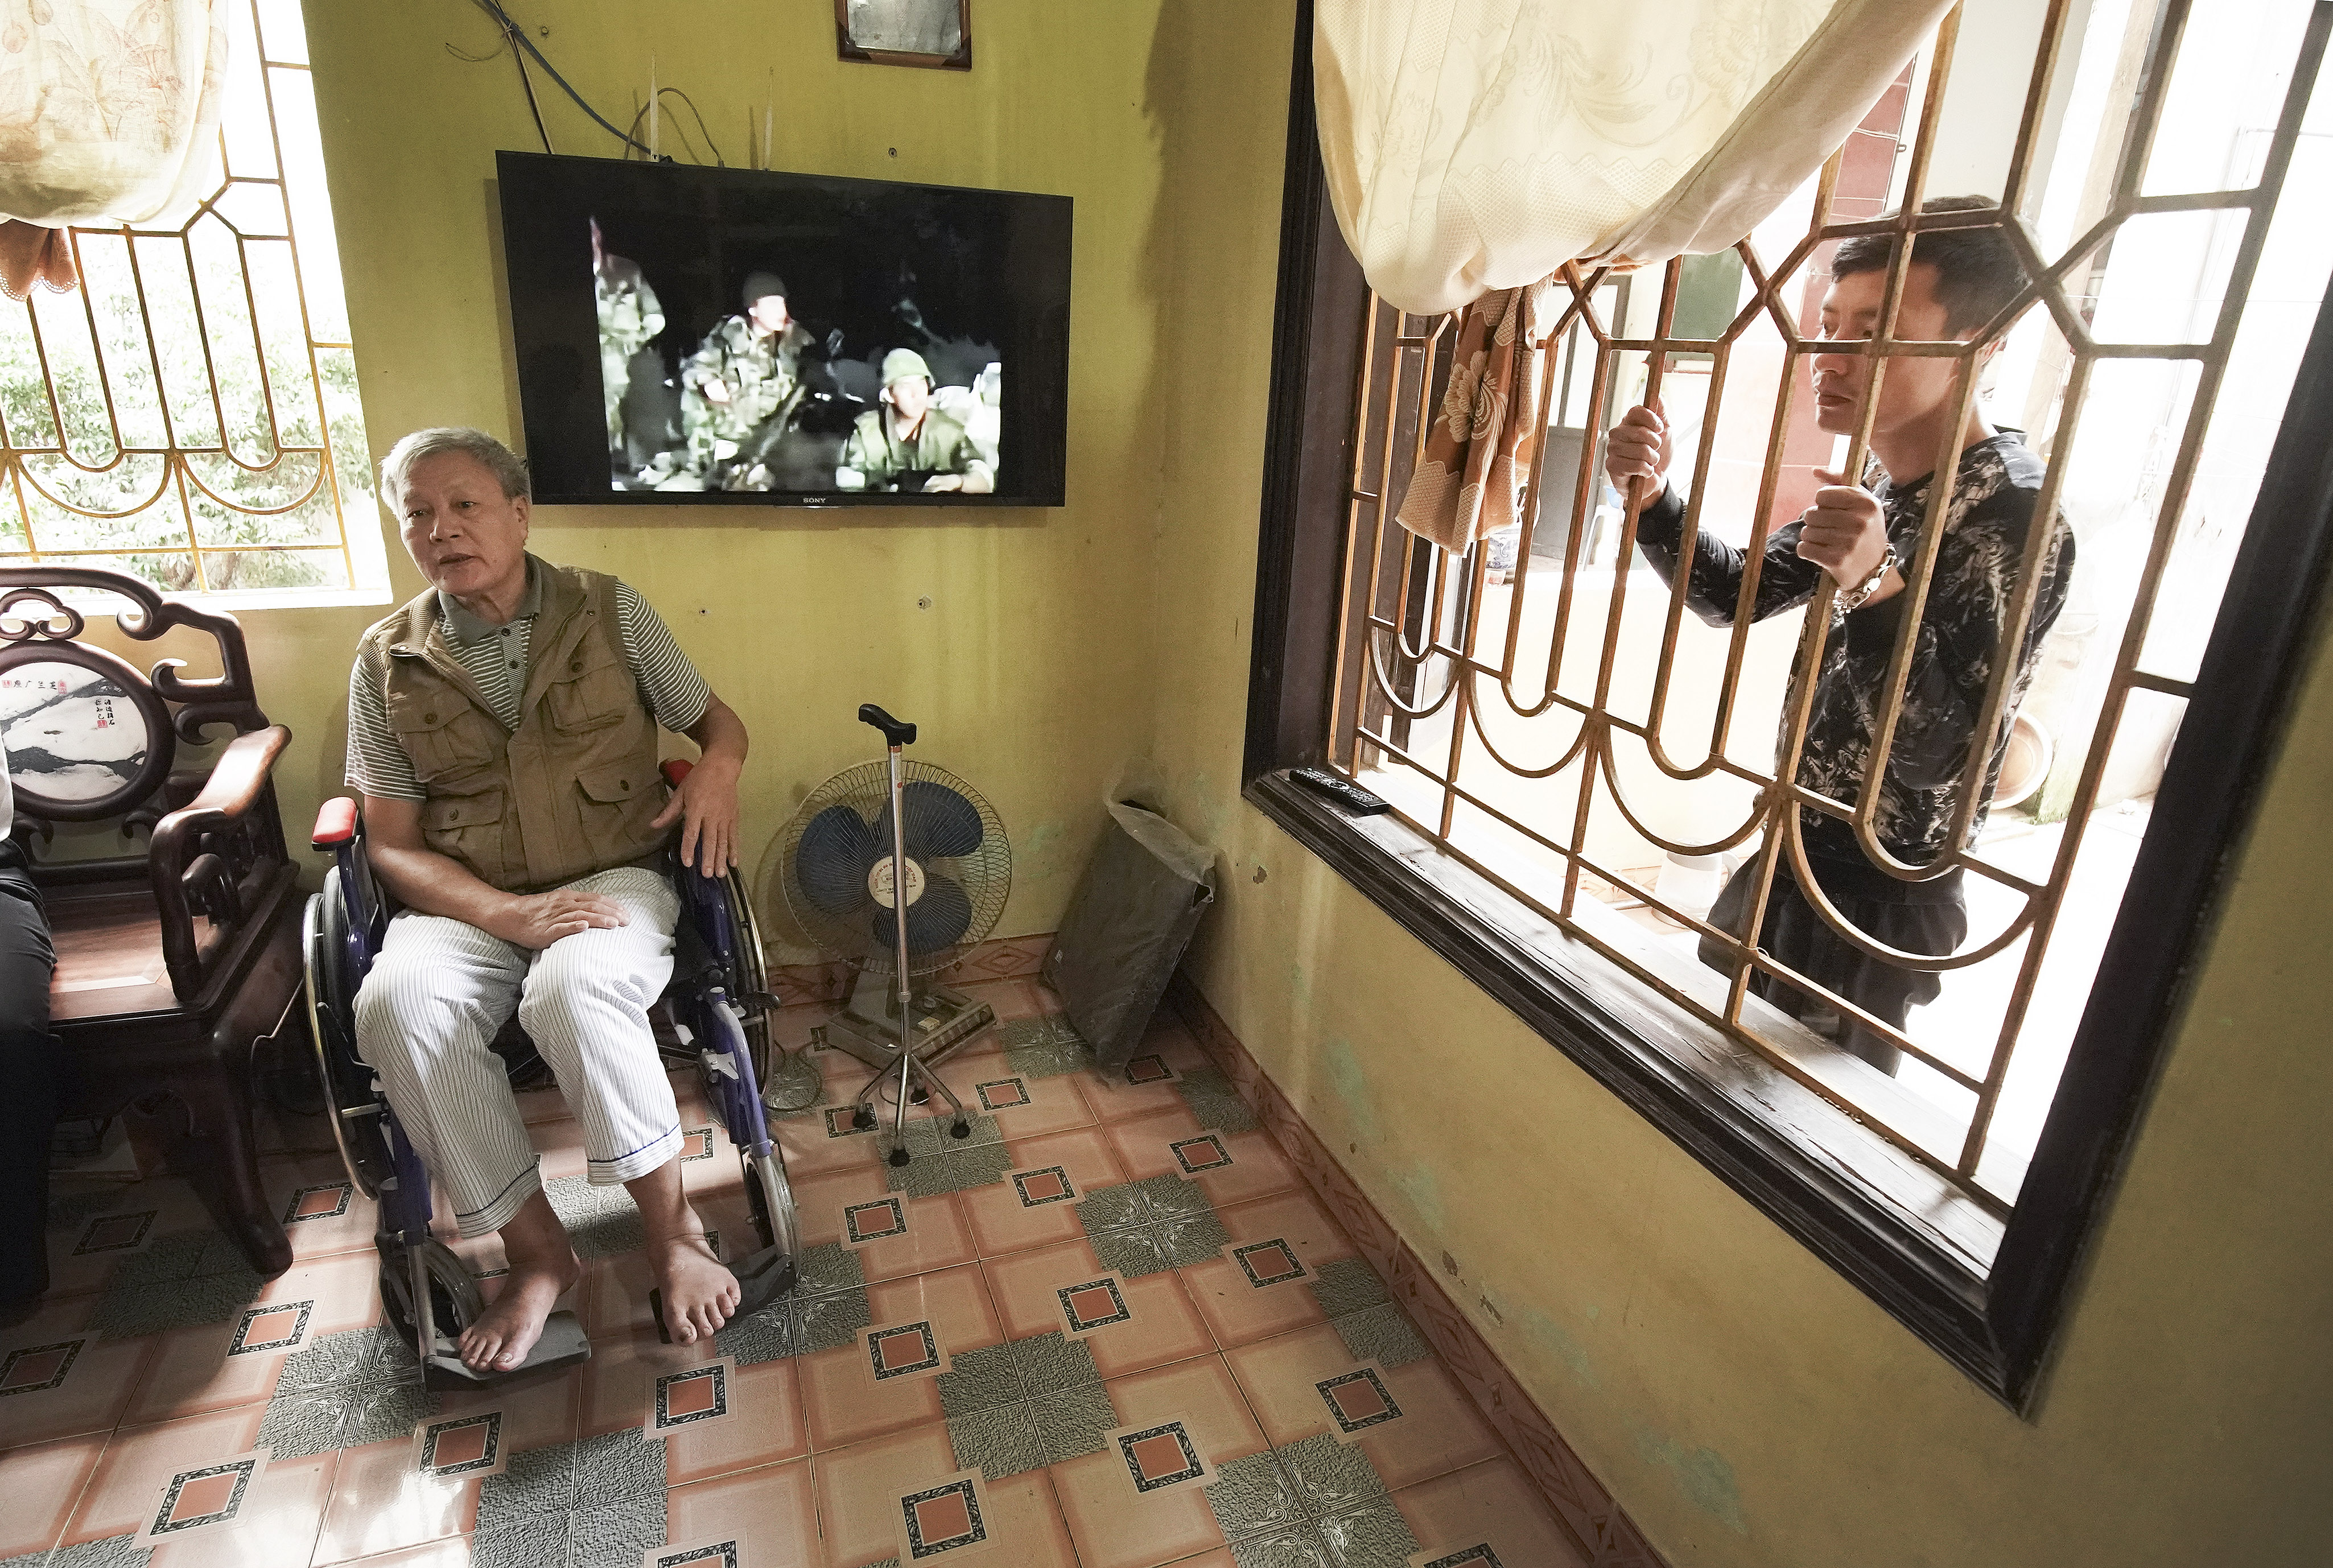 Tai Quang Pham sits in his wheelchair given to him by Latter-day Saints Charities in Hanoi, Vietnam, on Saturday, Nov. 16, 2019. His son Mai Thi Pham looks through the window.